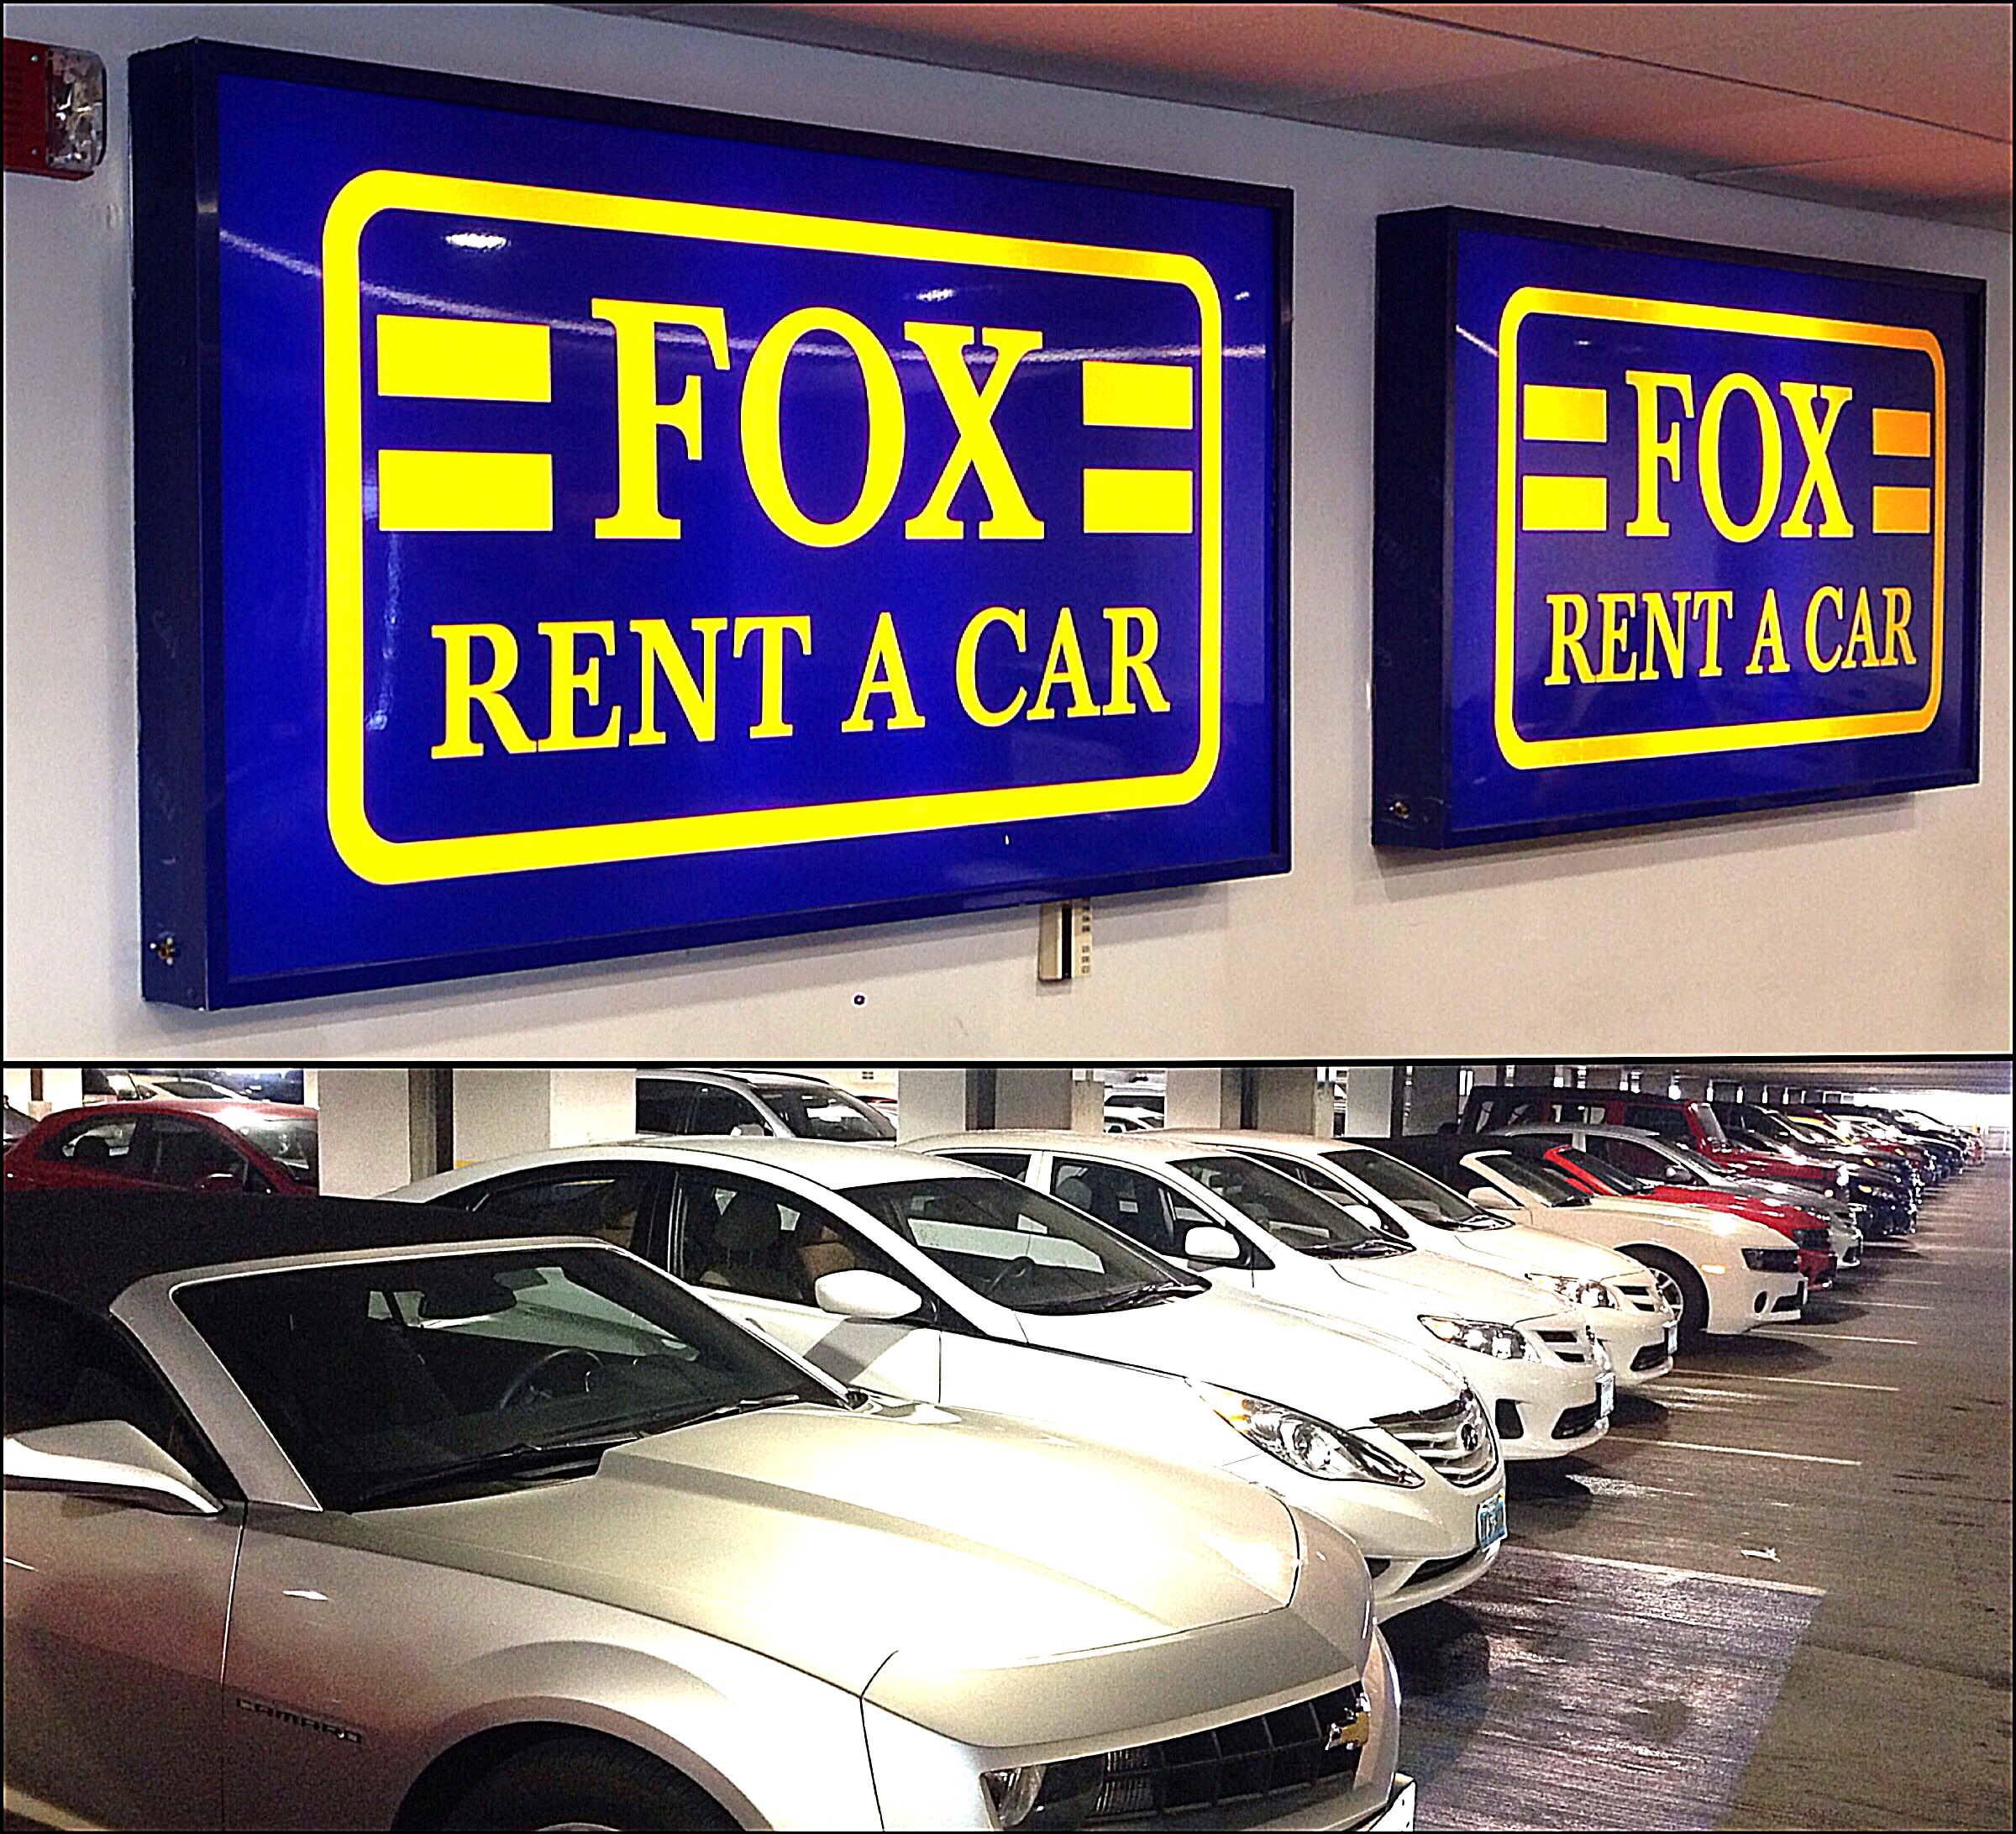 Fox Rent-A-Car Customer Service Complaints Department